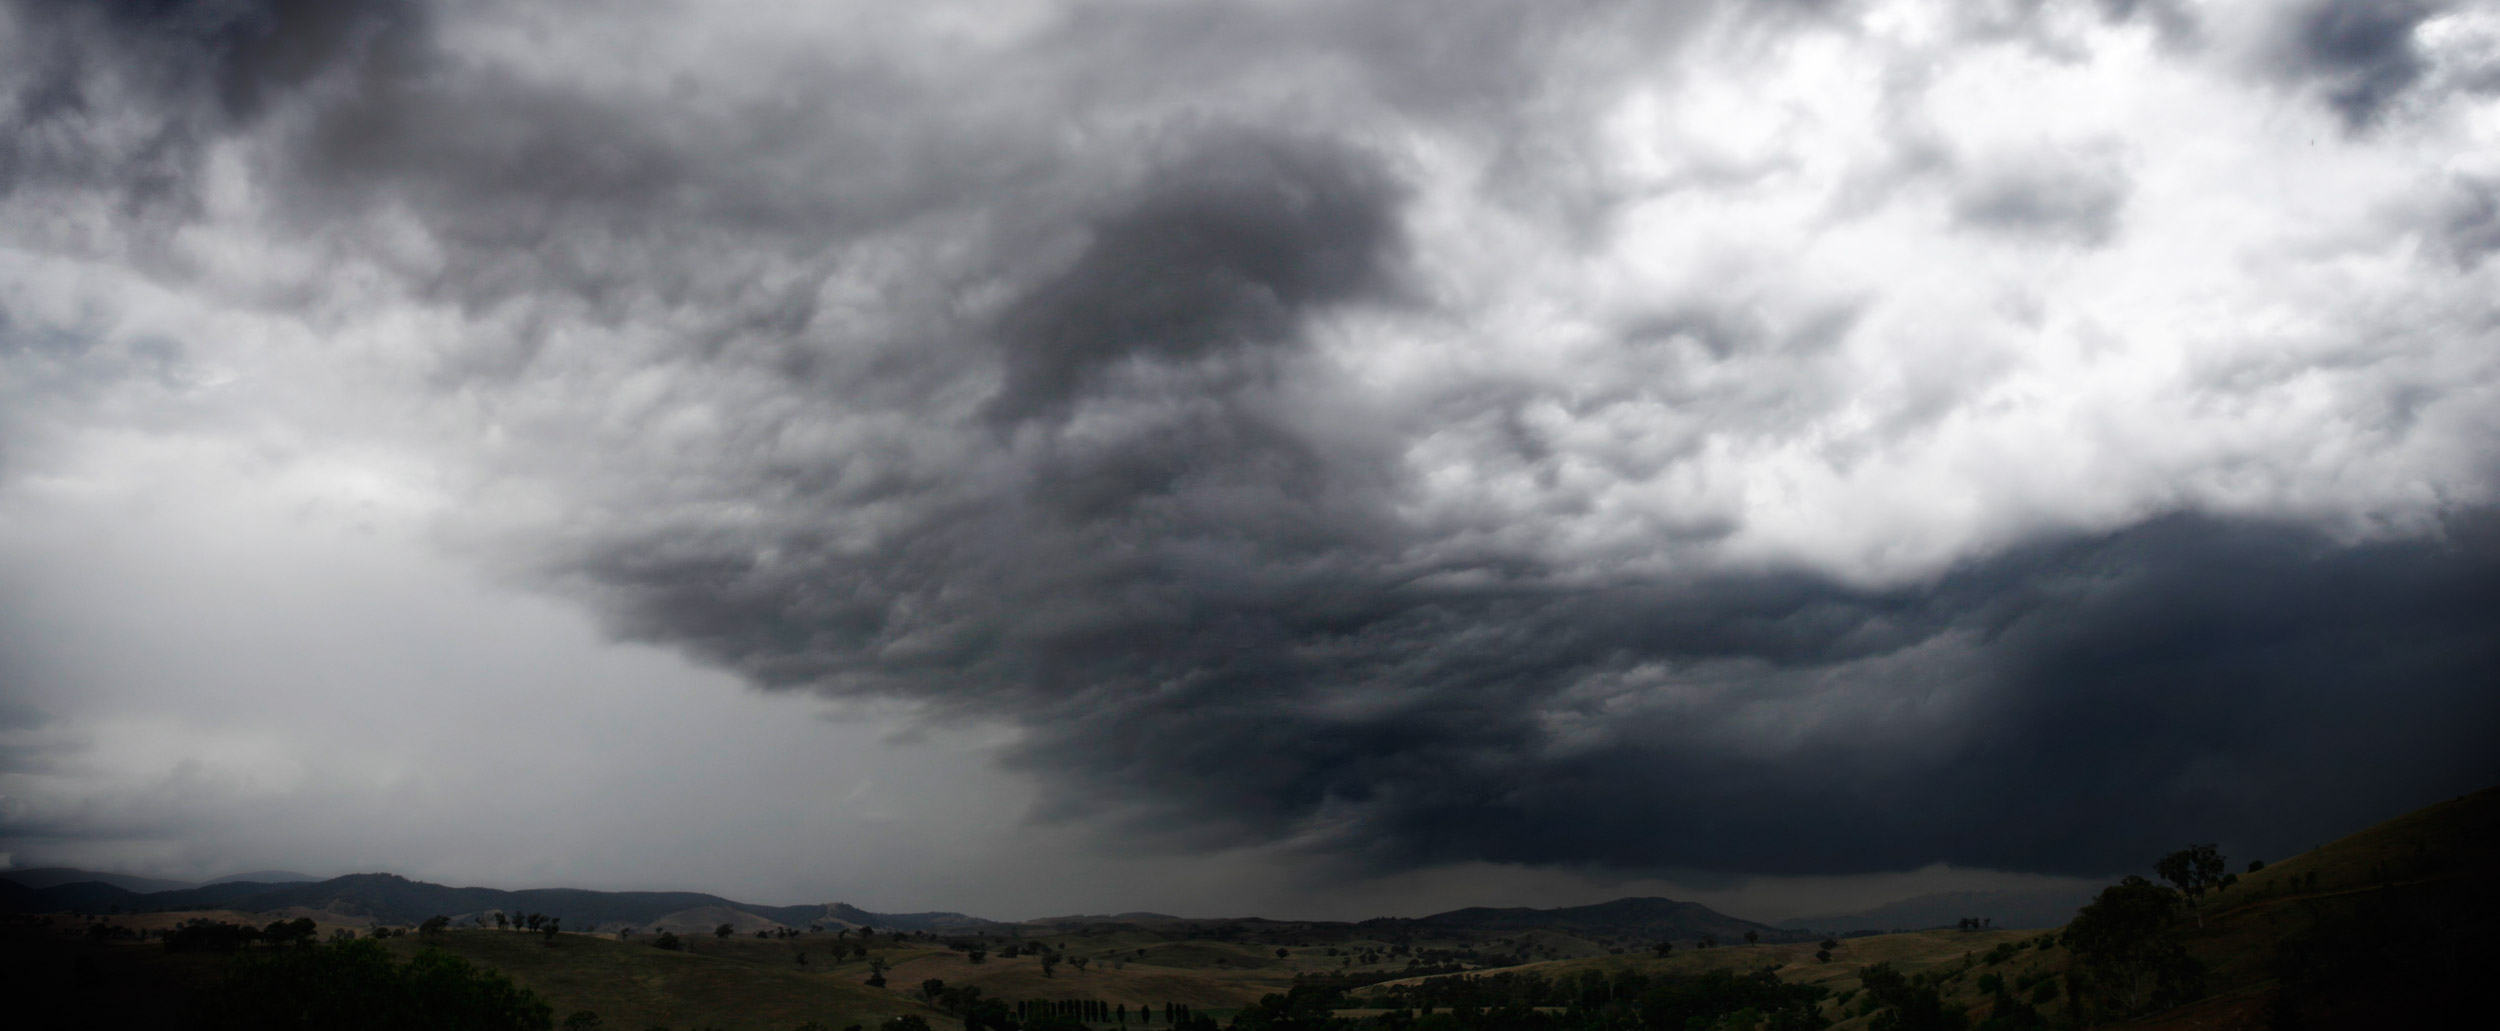 File:Storm clouds over swifts creek.jpg